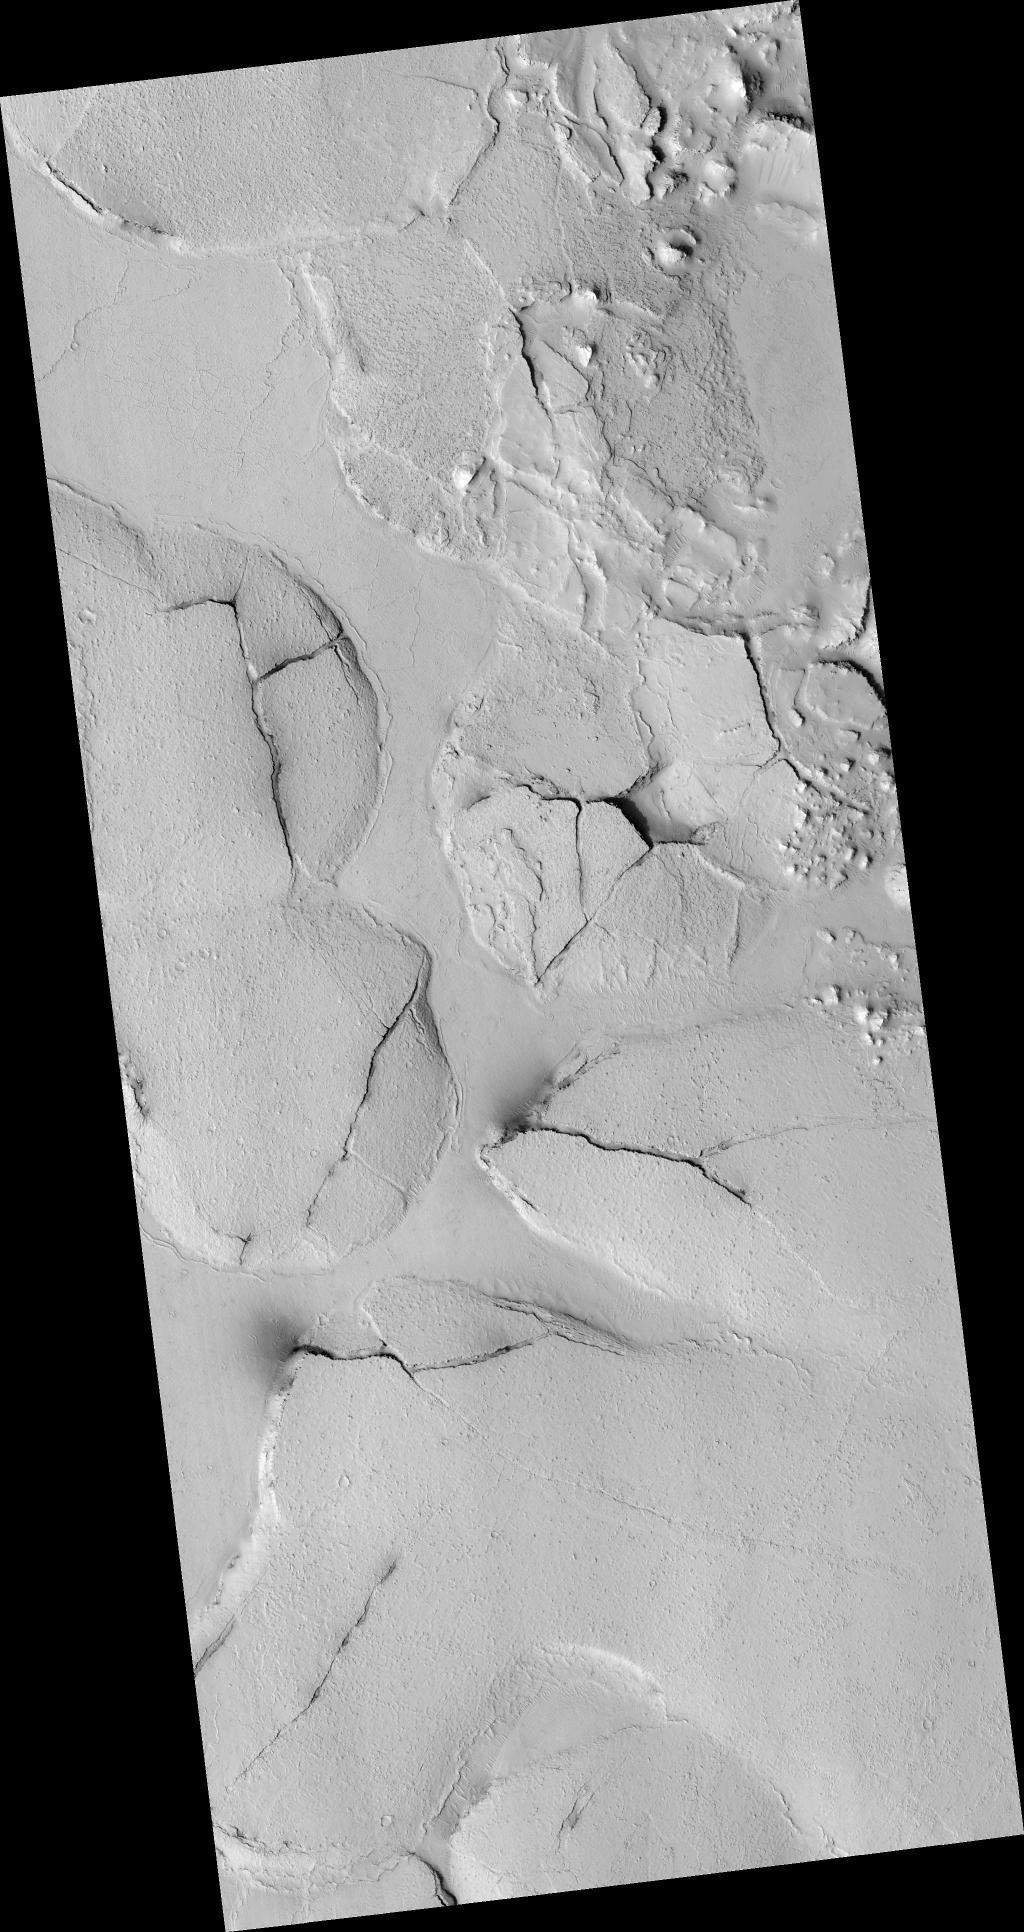 This HiRISE image (PSP_003597_1765), shows fractured mounds on the southern edge of Elysium Planitia.